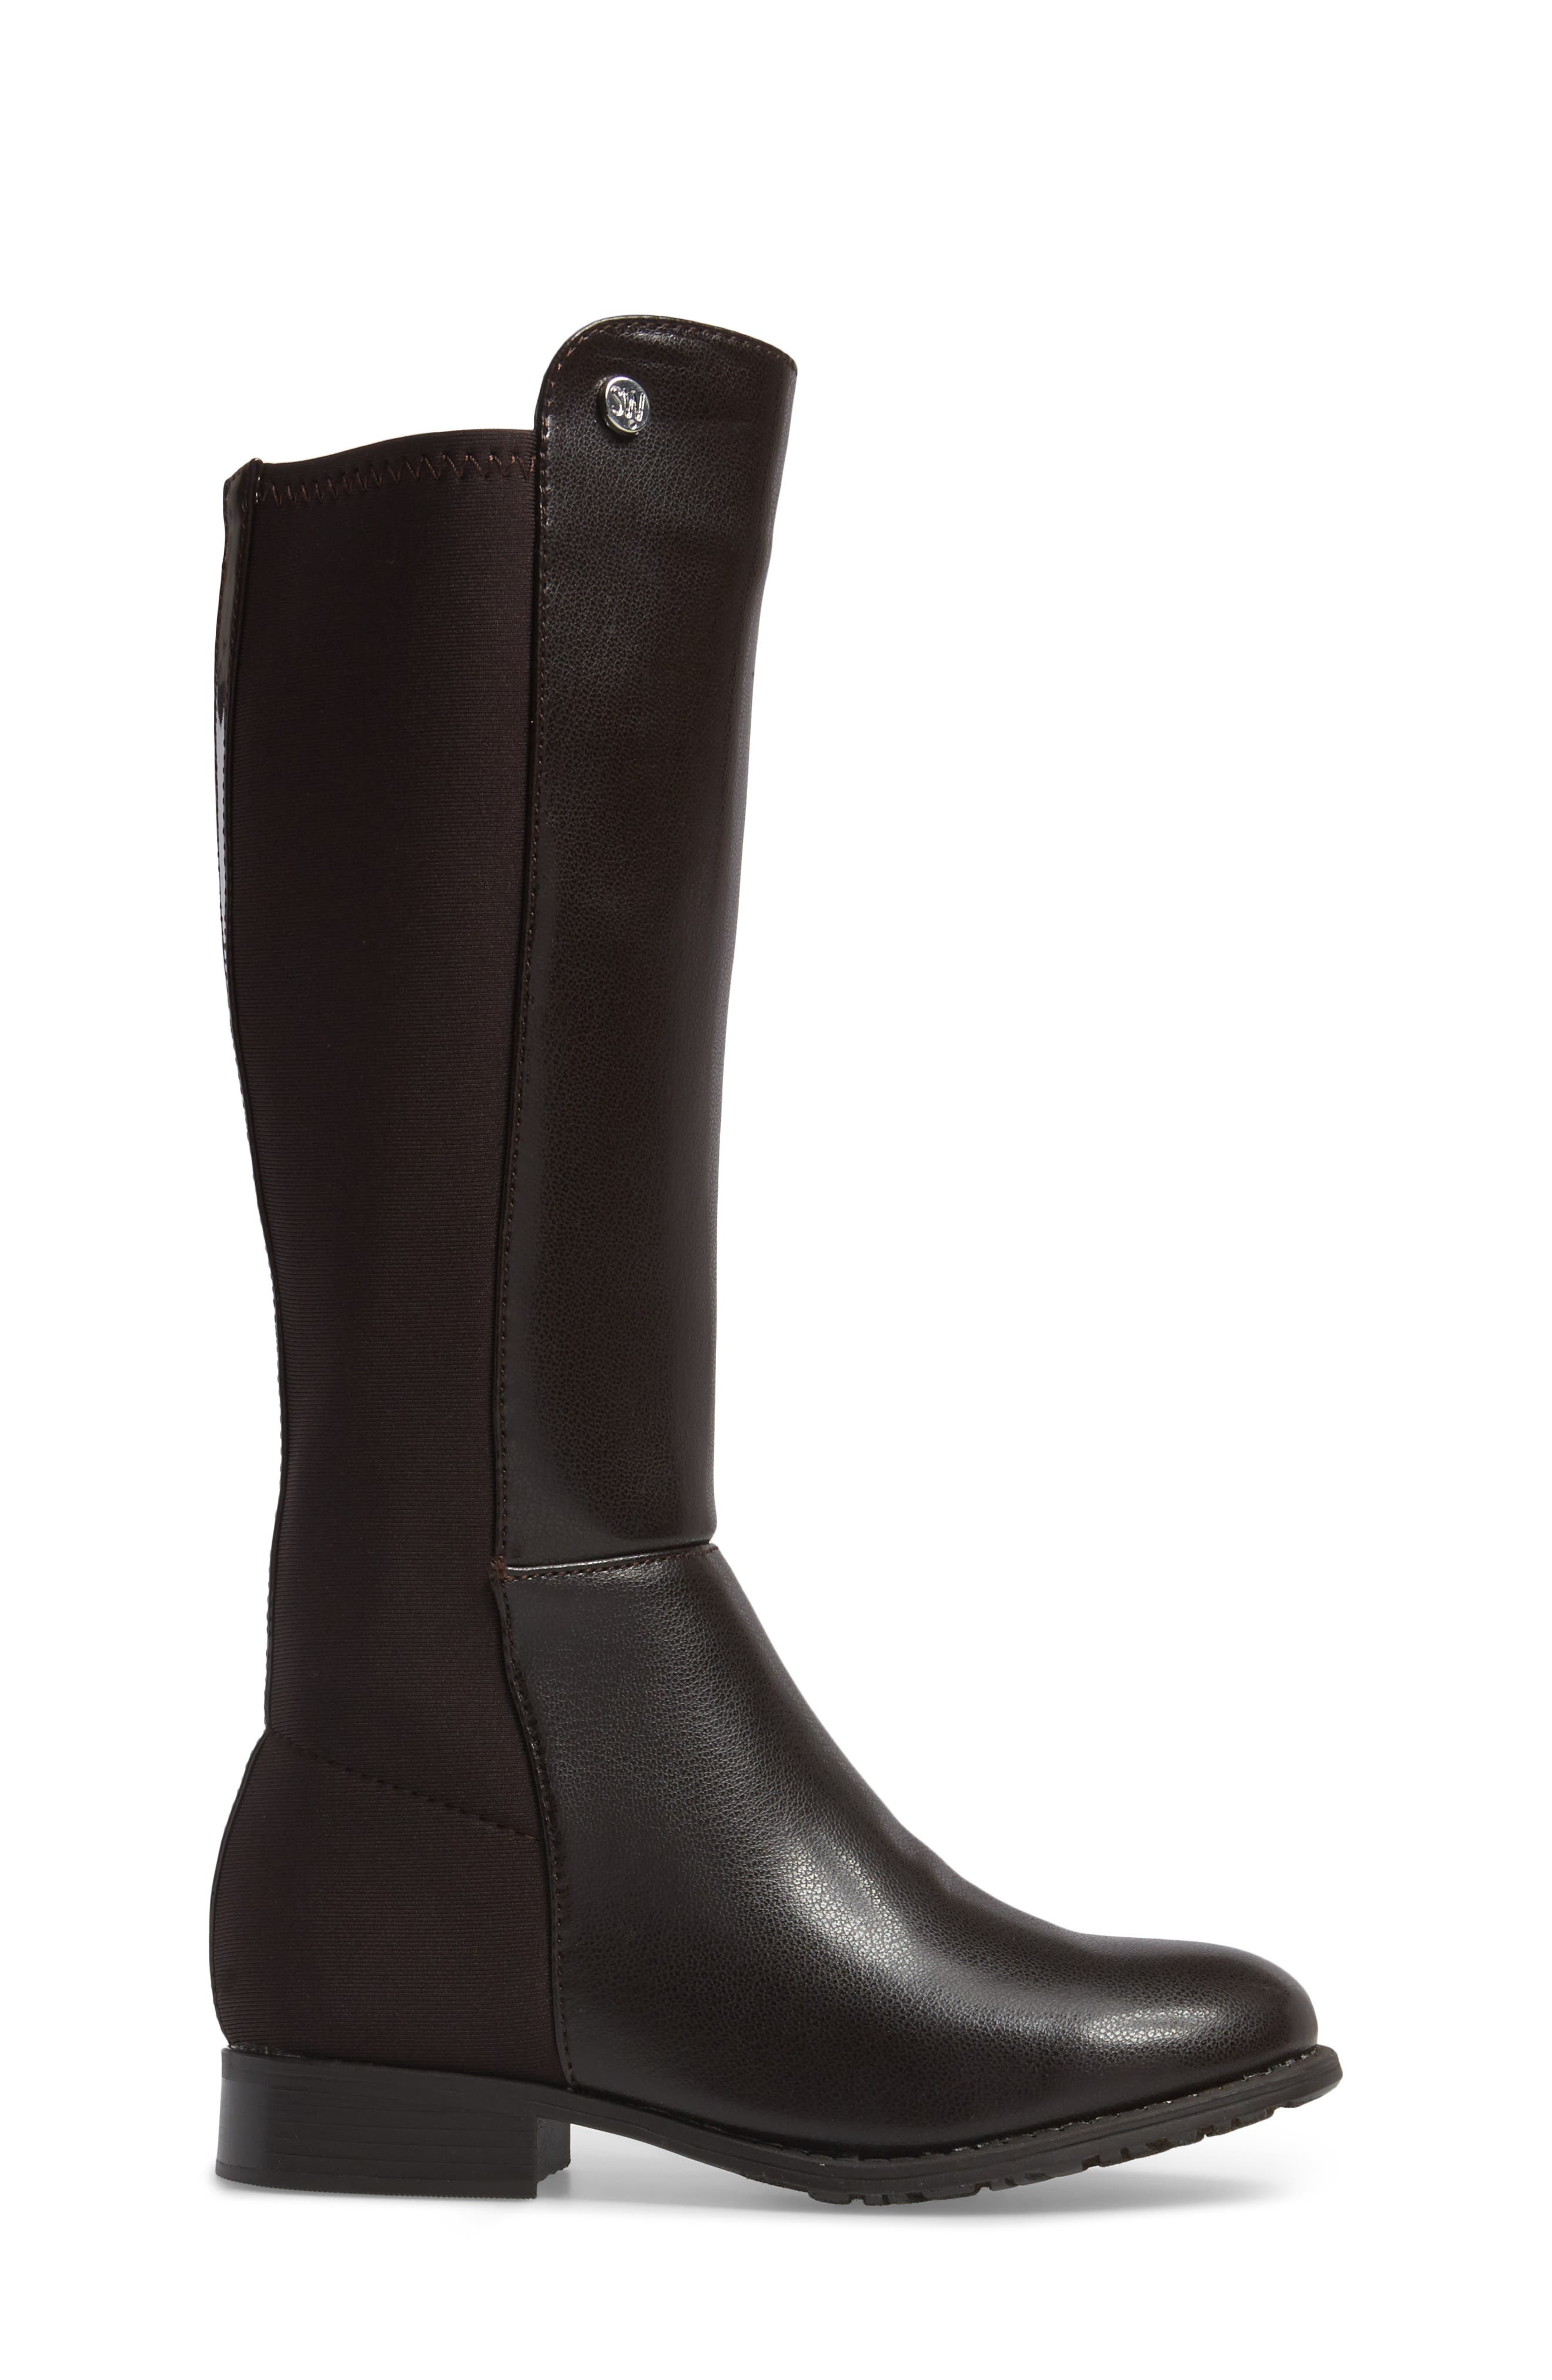 5050 Tall Riding Boot,                             Alternate thumbnail 6, color,